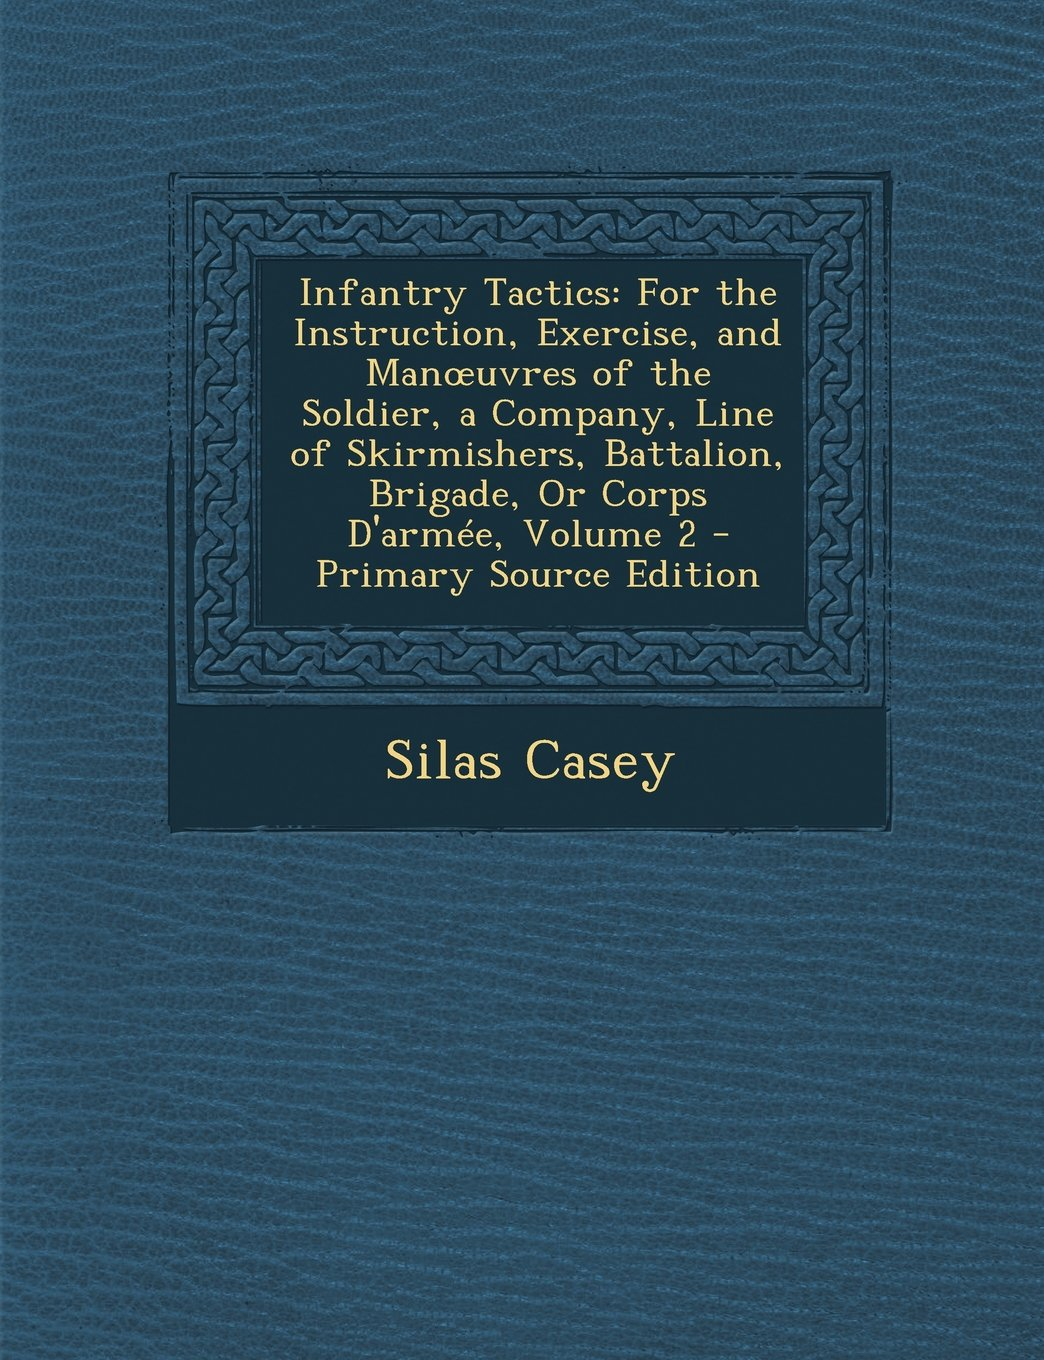 Download Infantry Tactics: For the Instruction, Exercise, and Man Uvres of the Soldier, a Company, Line of Skirmishers, Battalion, Brigade, or Co PDF